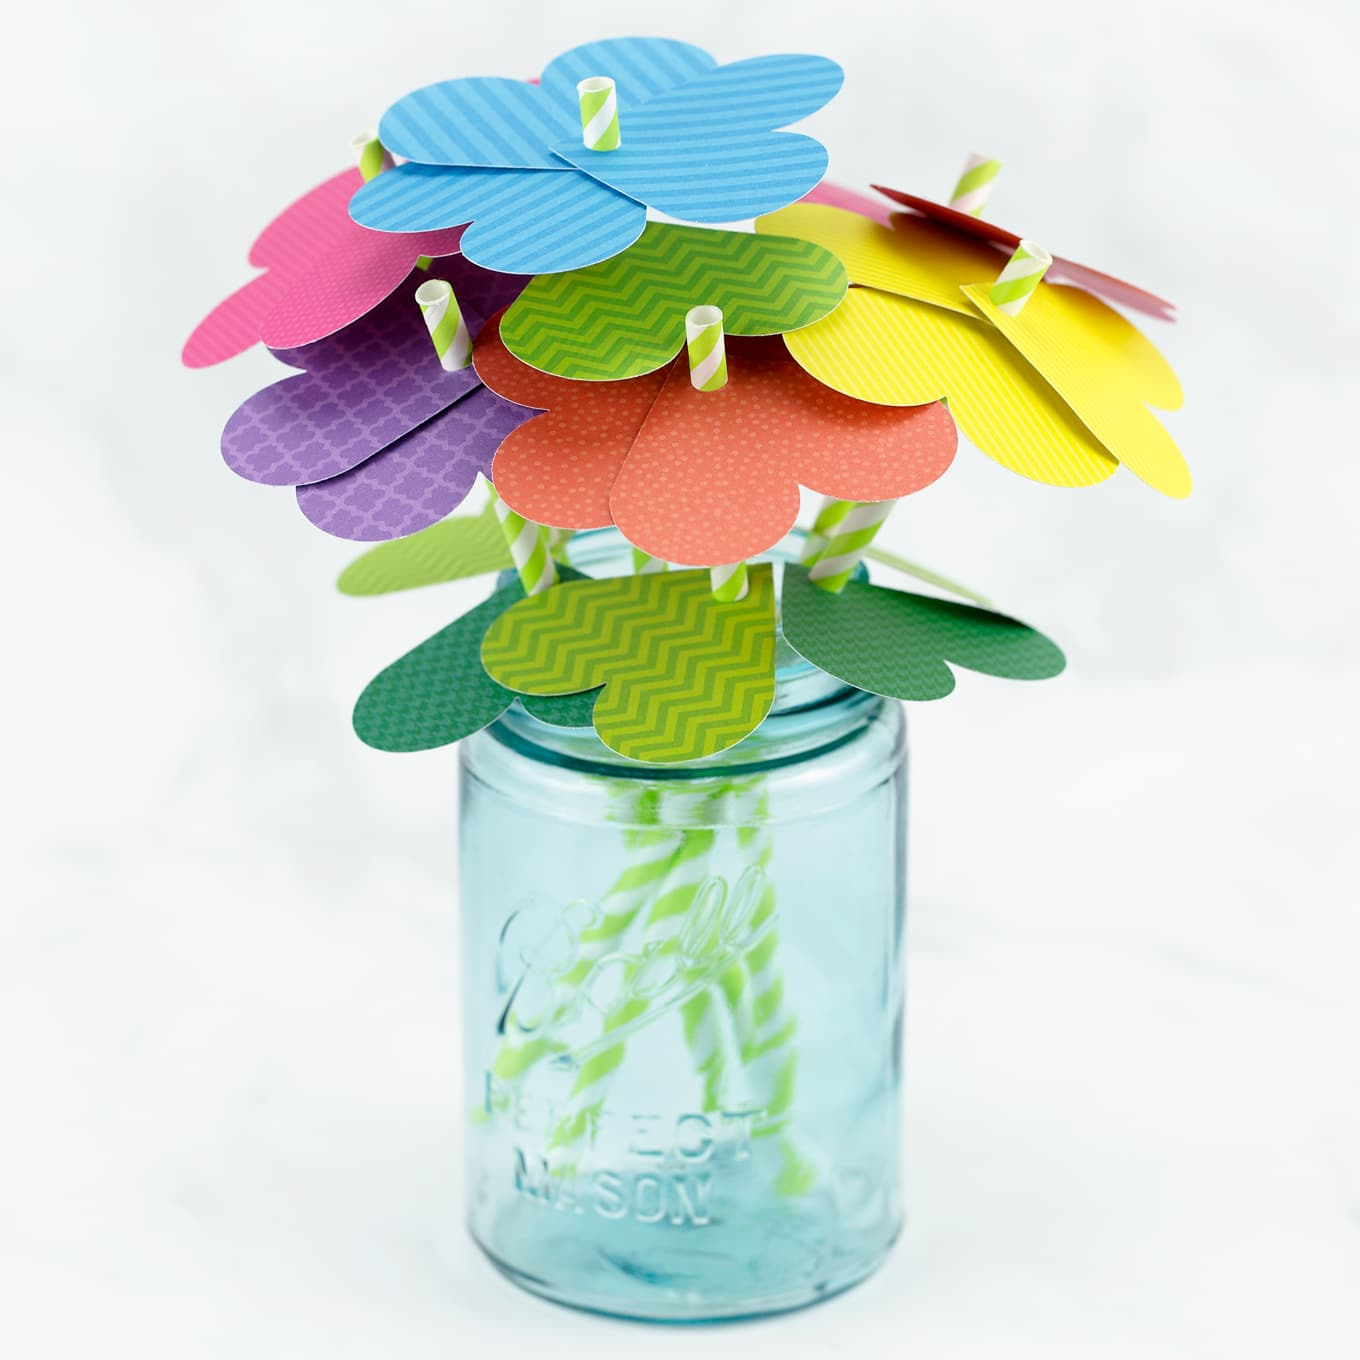 Paper Heart Flowers in a Vintage Mason Jar